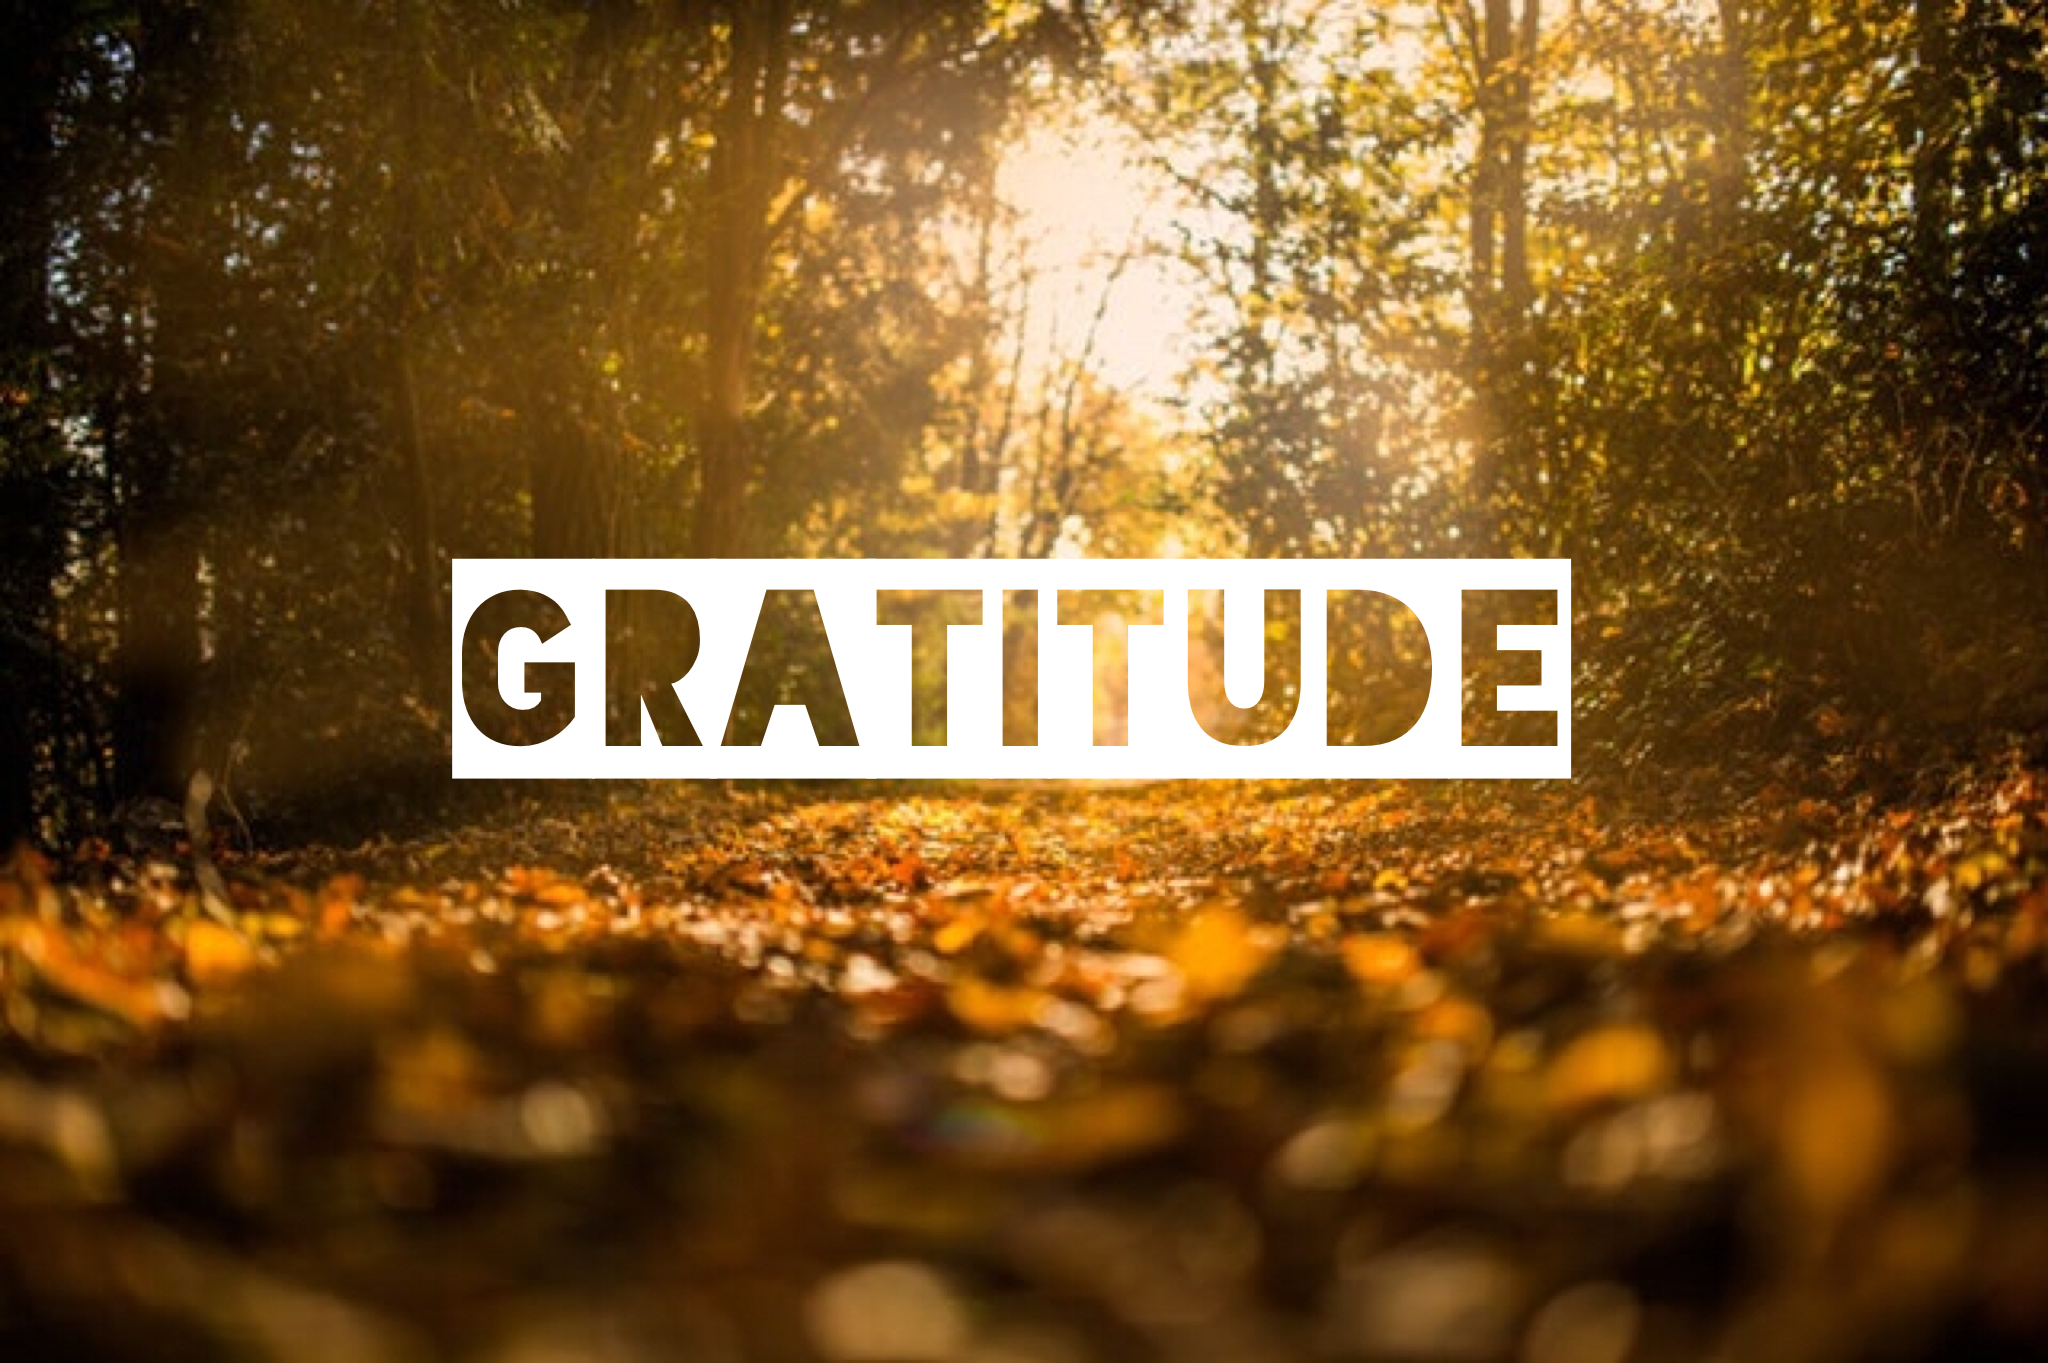 The word gratitude over an image of fall leaves